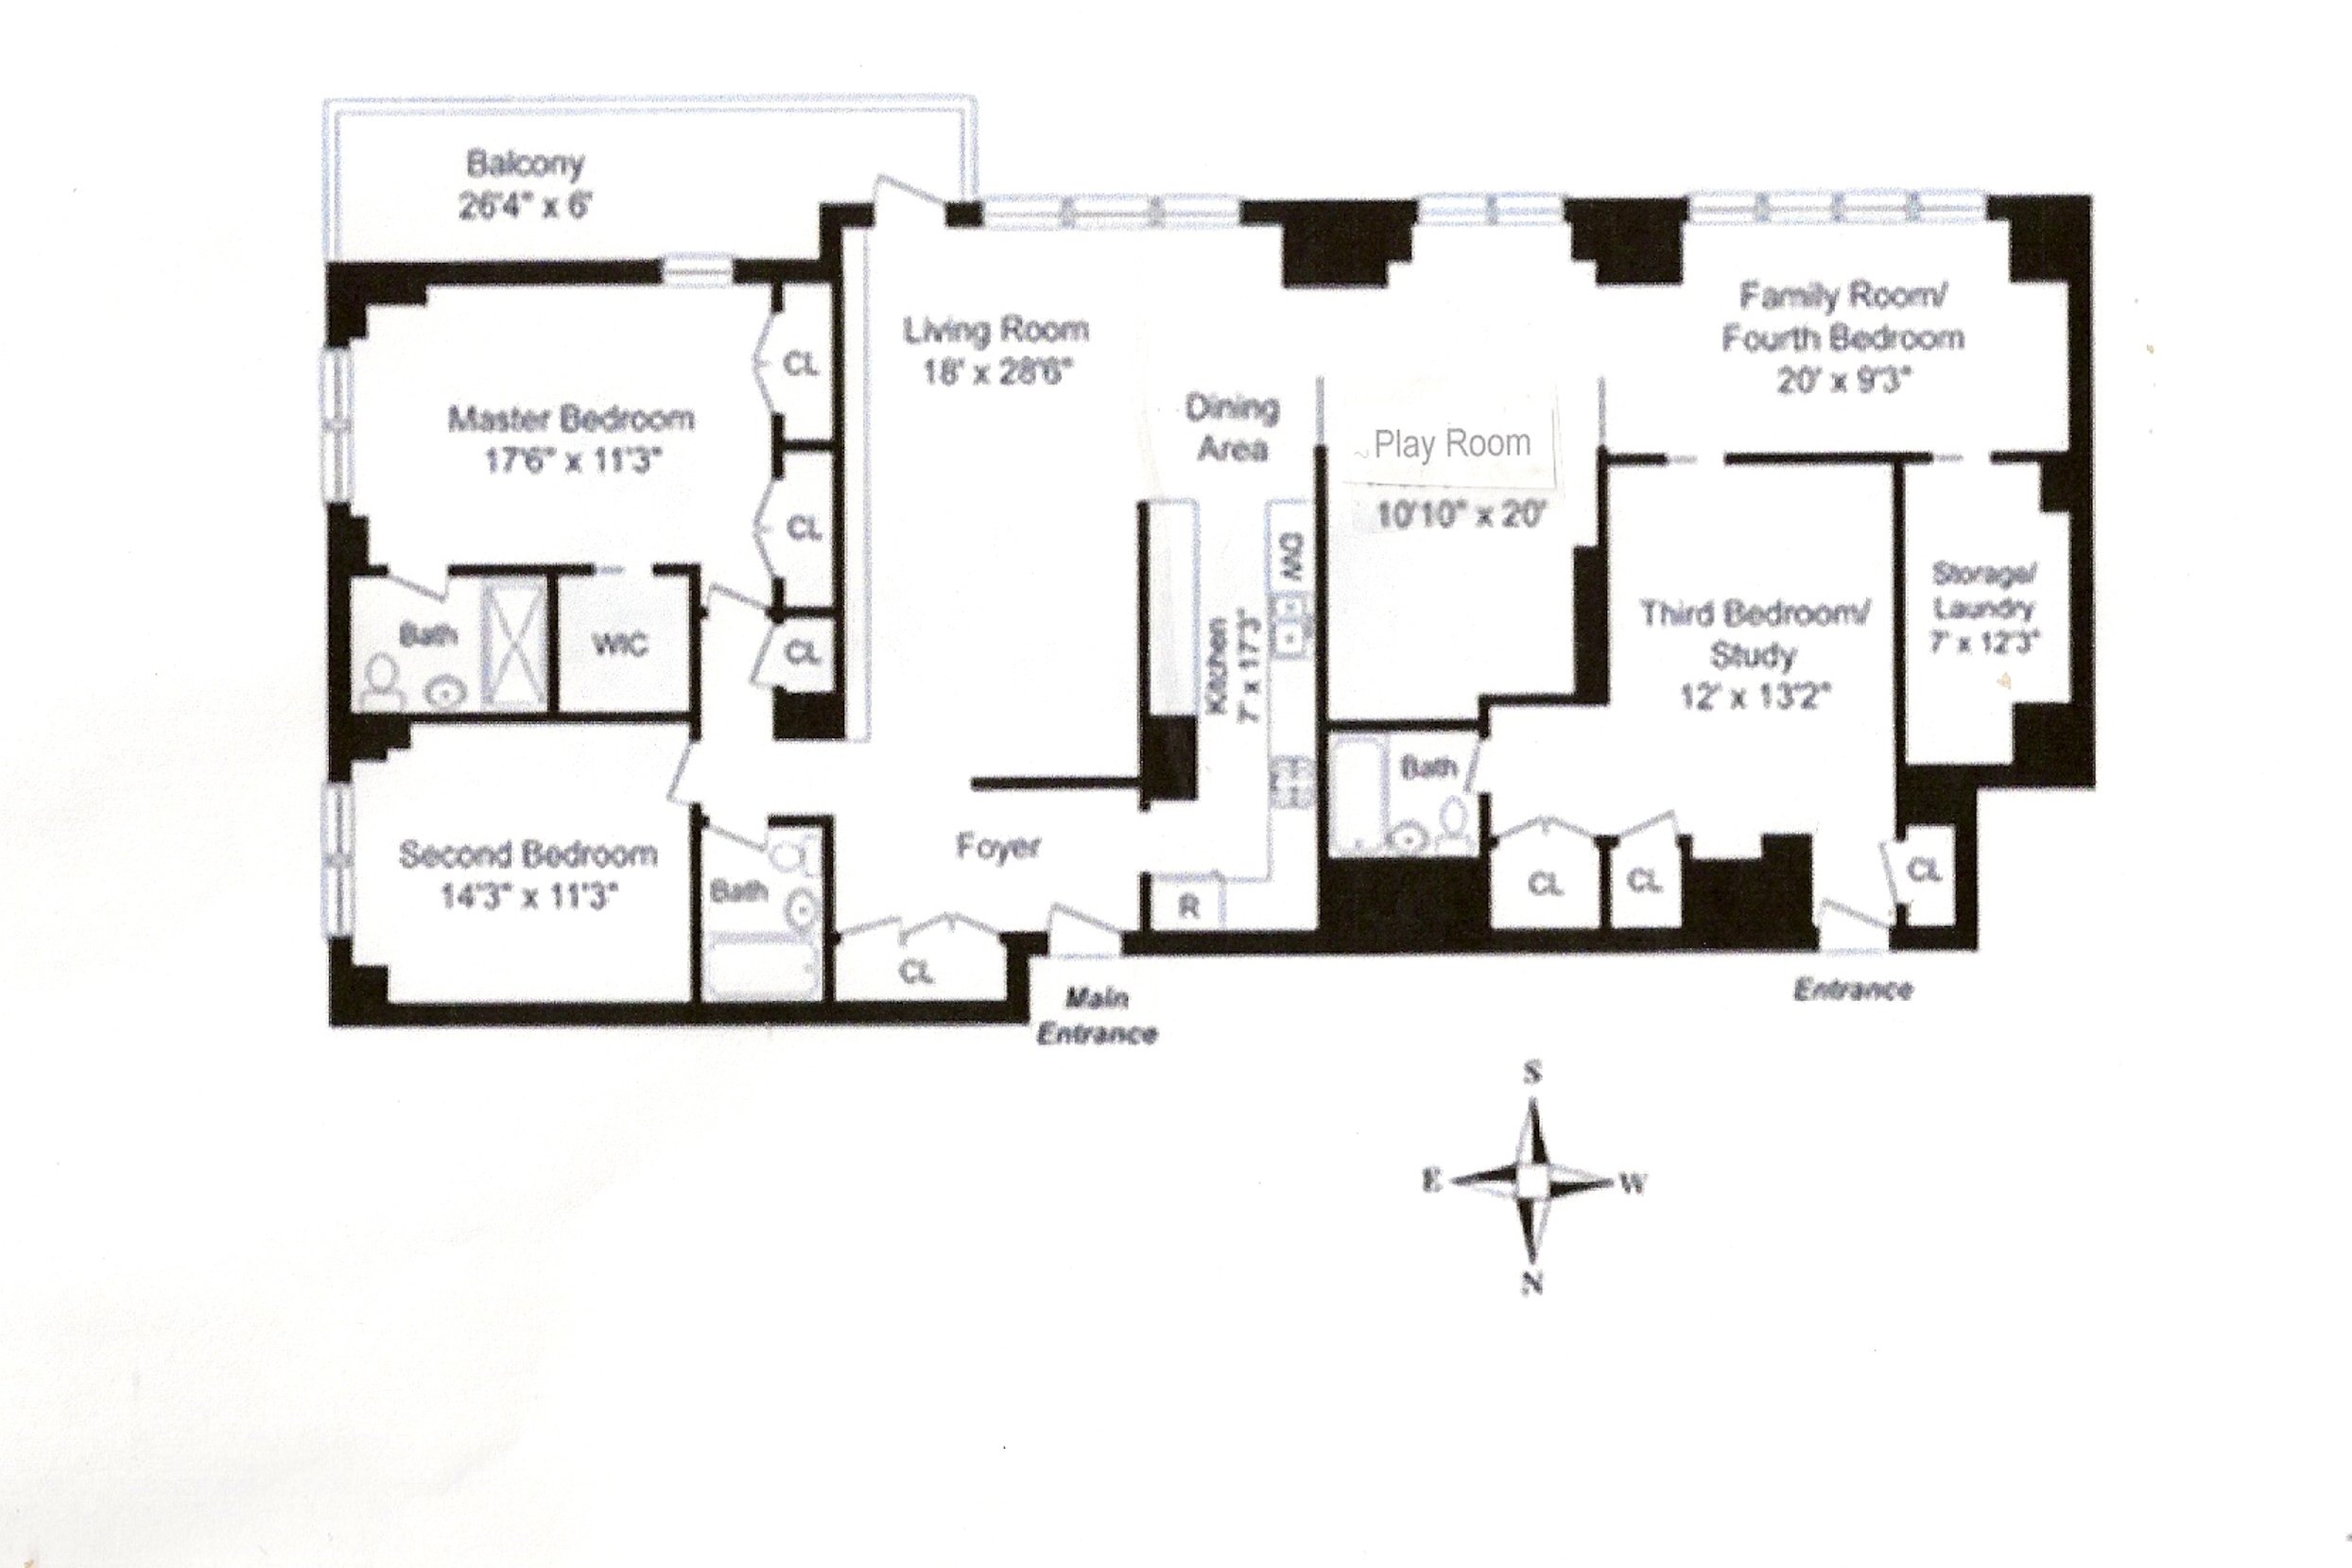 To Sq Ft House Plans as well How to measure kitchens cabi s additionally Boys Boots as well 1764 Sq Ft Home 1 Story 4 Bedroom 2 Bath House Plans Plan61 117 besides Floor Plan Symbols. on kitchen with refrigerator in corner